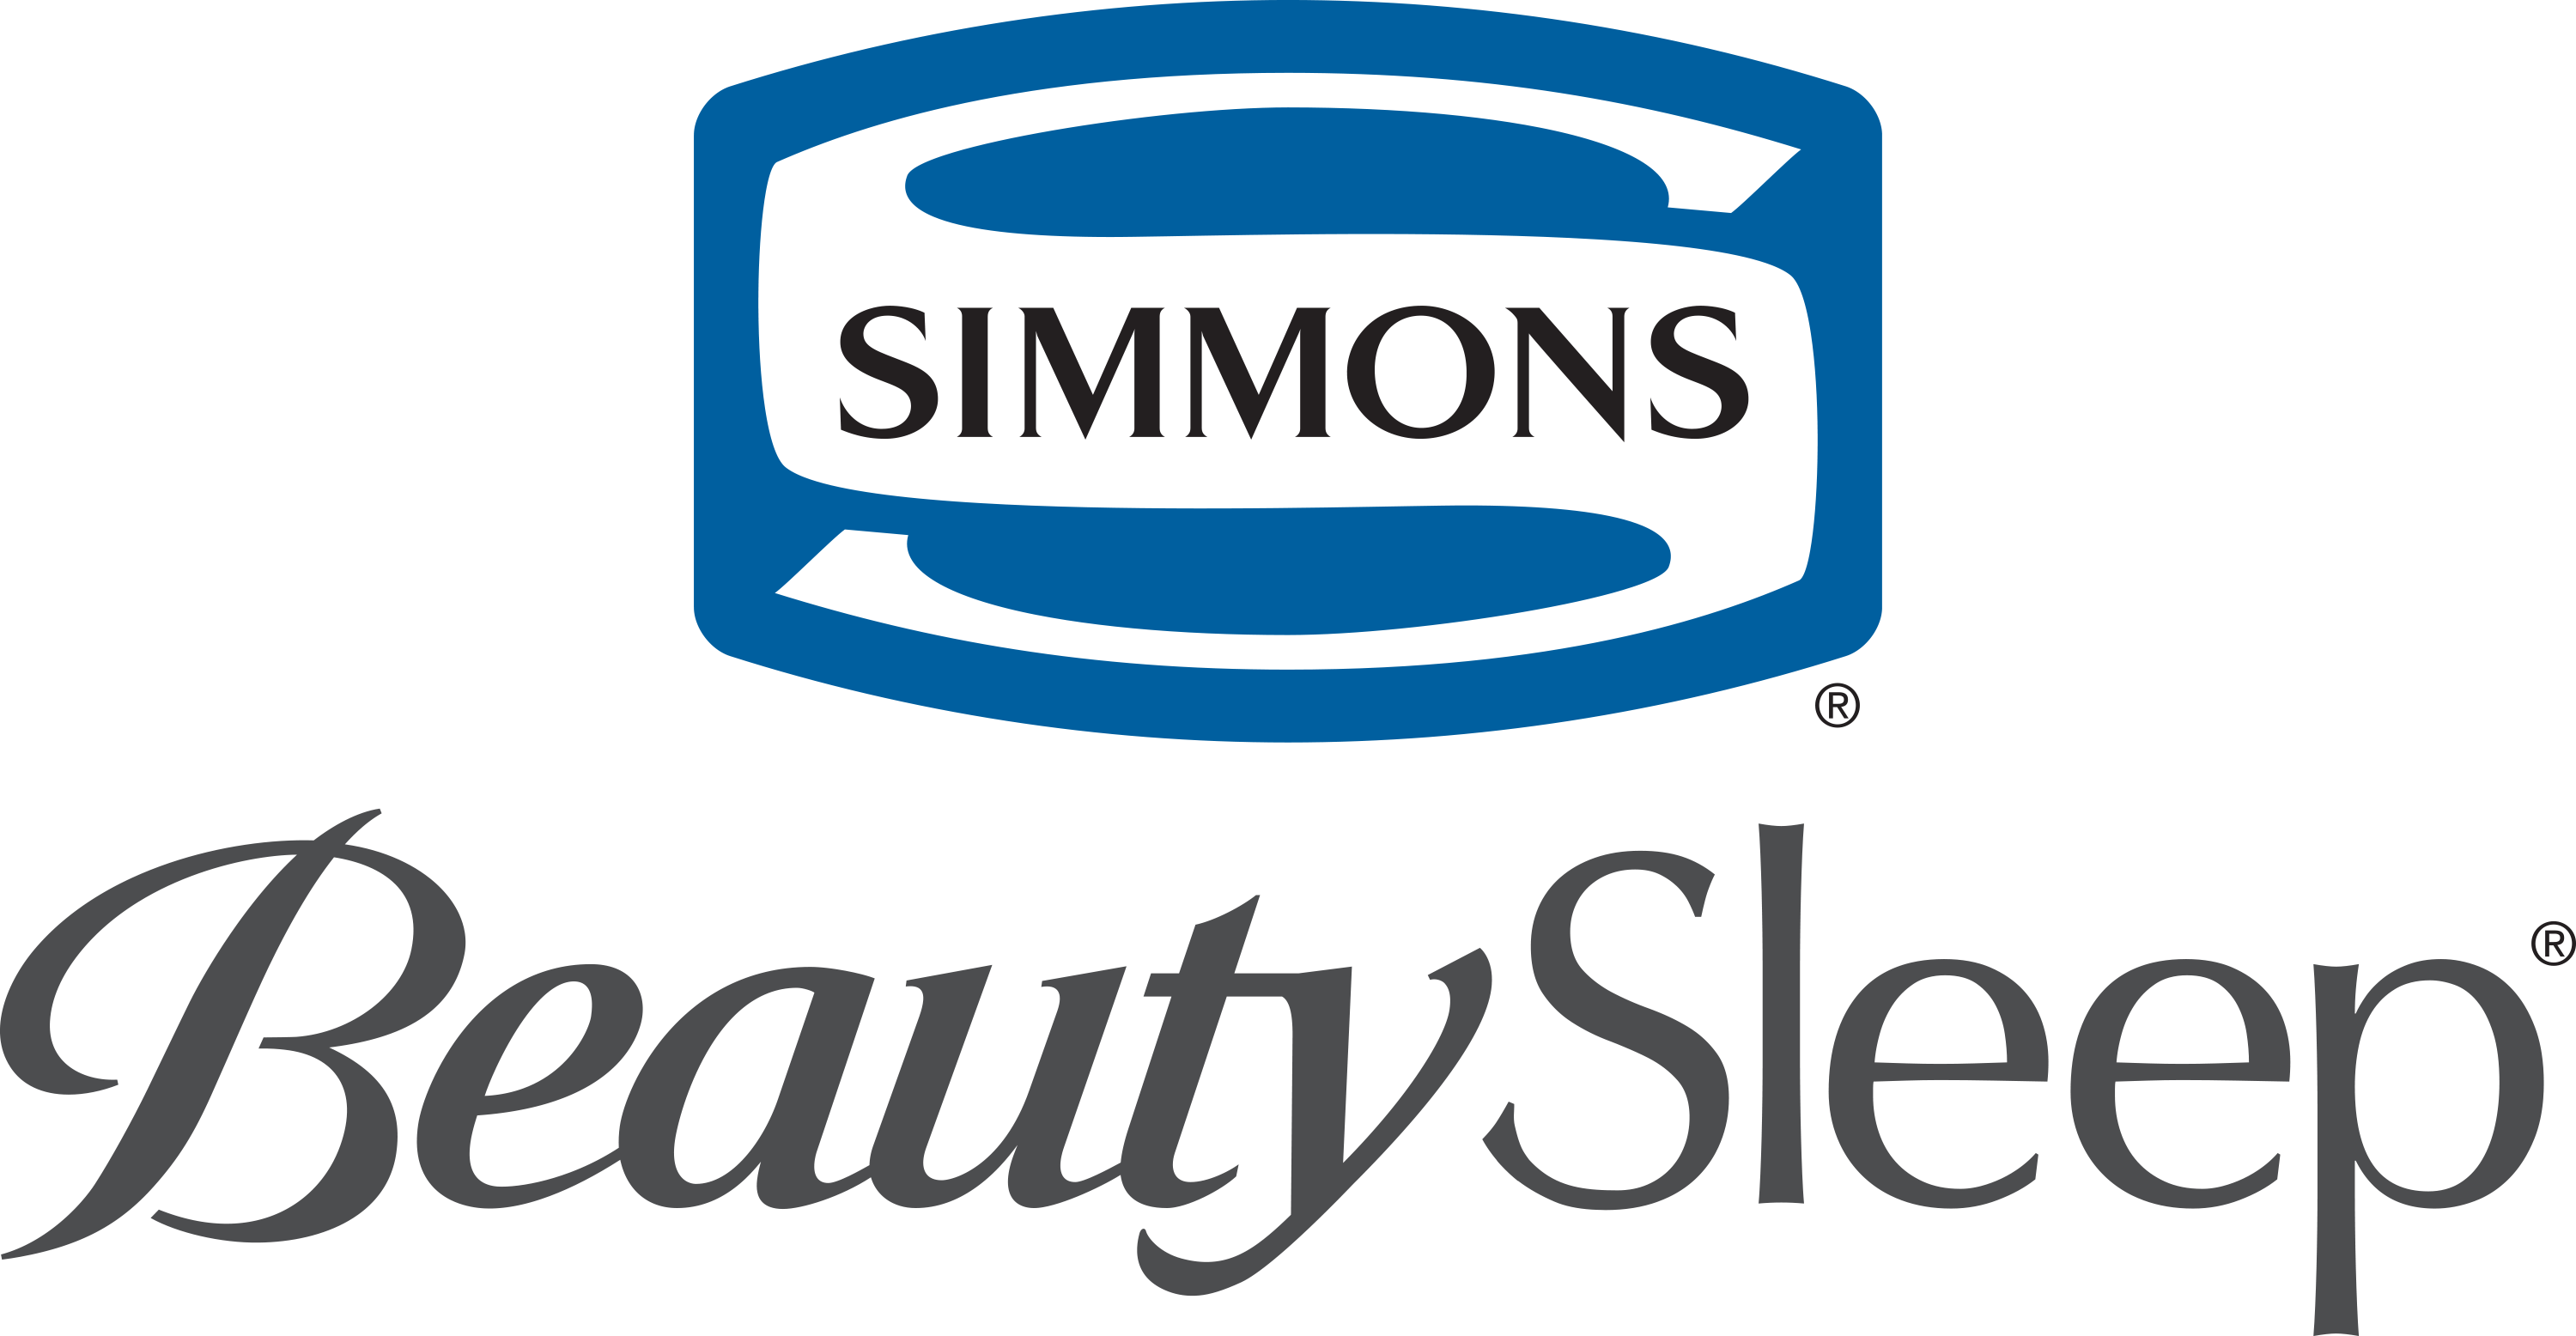 Simmons Logo Png Simmons Om Series Simmons Logo Png